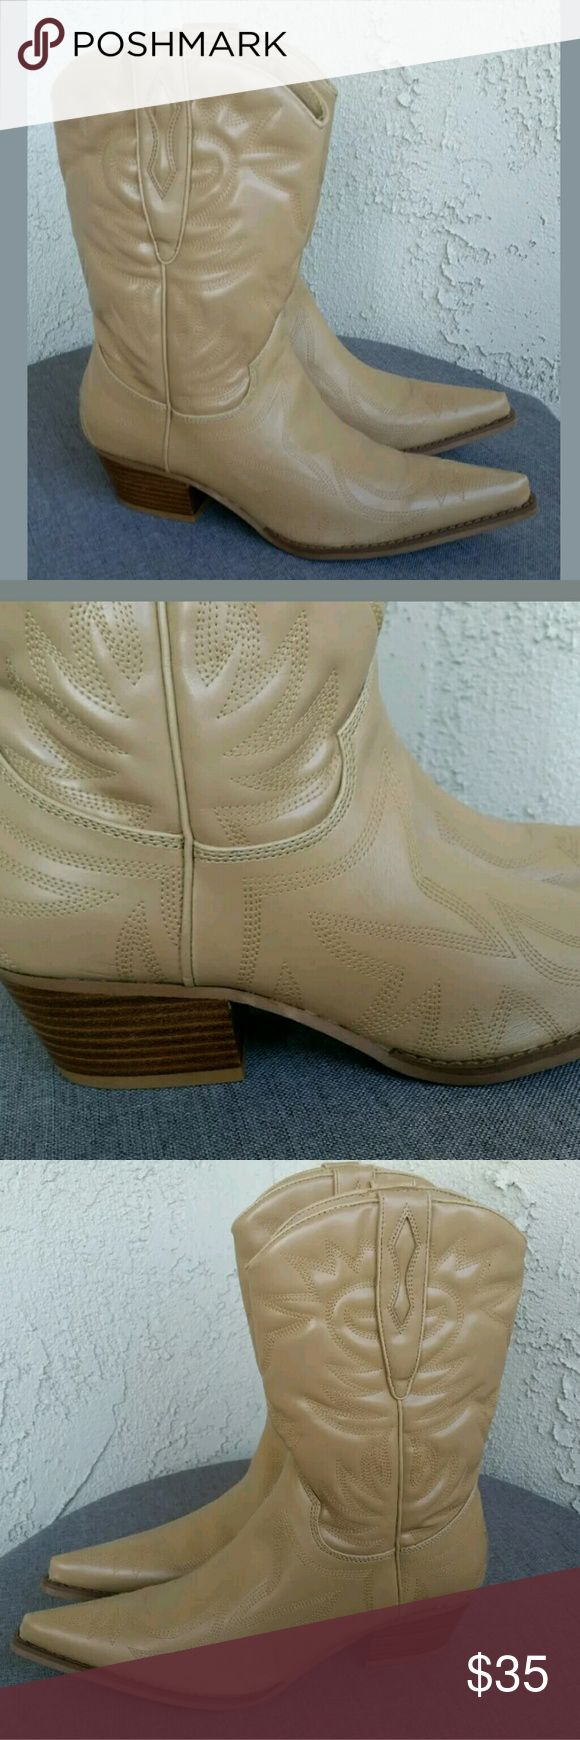 """Cathy Jean Stitched Leather Cowboy Boots 7.5 M Cathy Jean Boots Womens Camel Tan Stitched Leather Country Western Cowboy Career Casual Shoes Size 7.5 M with 2"""" Block Heel.....Excellent Condition.   Type: Shoes Style: Cowboy Boots Brand: Cathy Jean Size: 7.5 M Material: Genuine Leather Color: Camel / Tan Condition: Excellent Preowned Condition  Country of Manufacturer:  Stock Number: Shoes 0008 Cathy Jean Shoes Heeled Boots"""